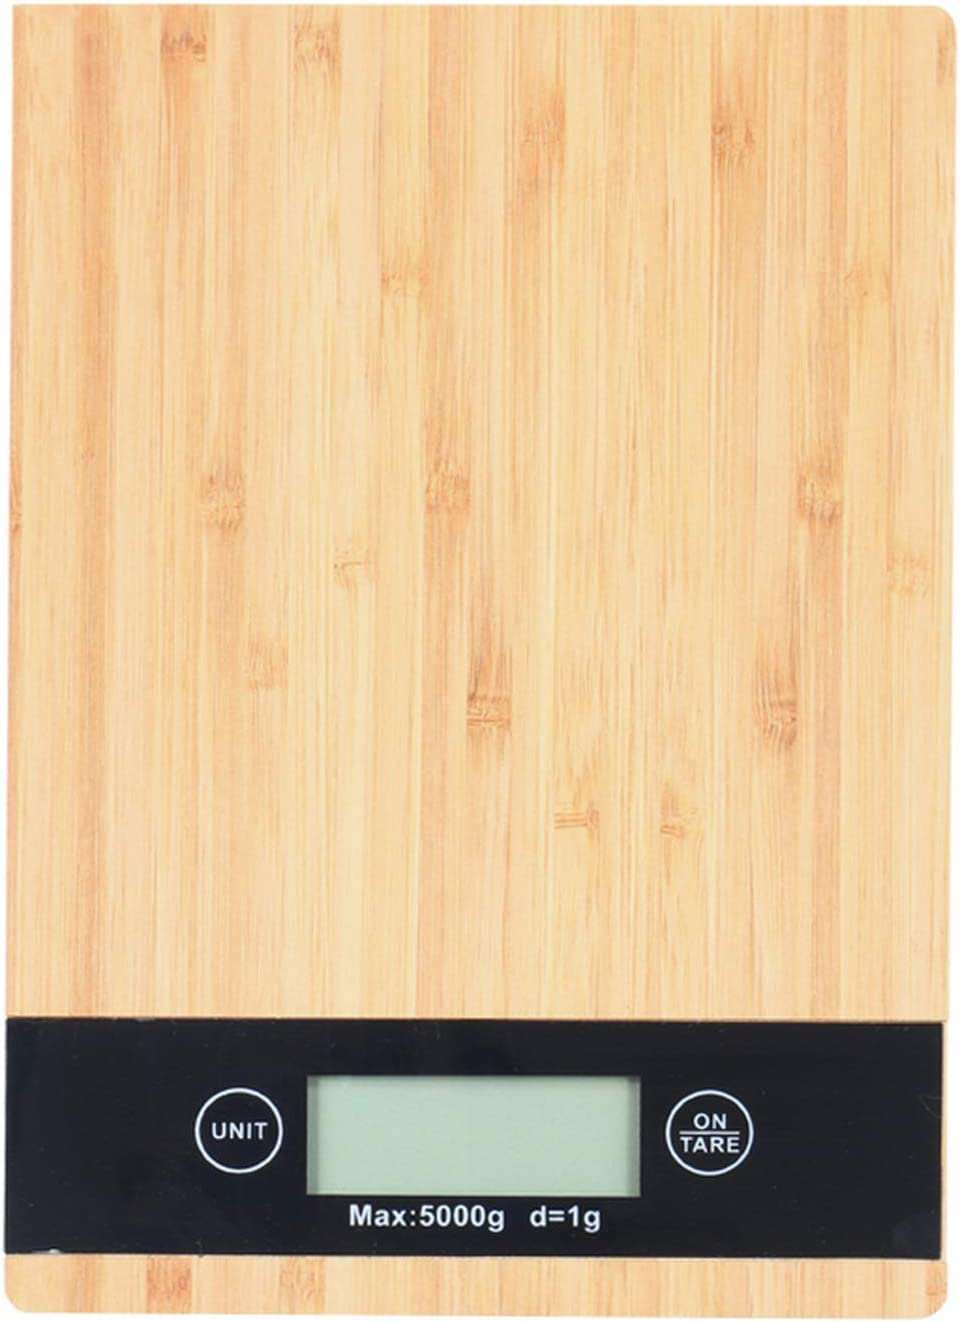 Digital Food Kitchen Scale| Bamboo Panel Electronic Digital Kitchen Scale| LCD Screen Display| Multifunction Weight Scale Measures in GM/LB/OZ/KG